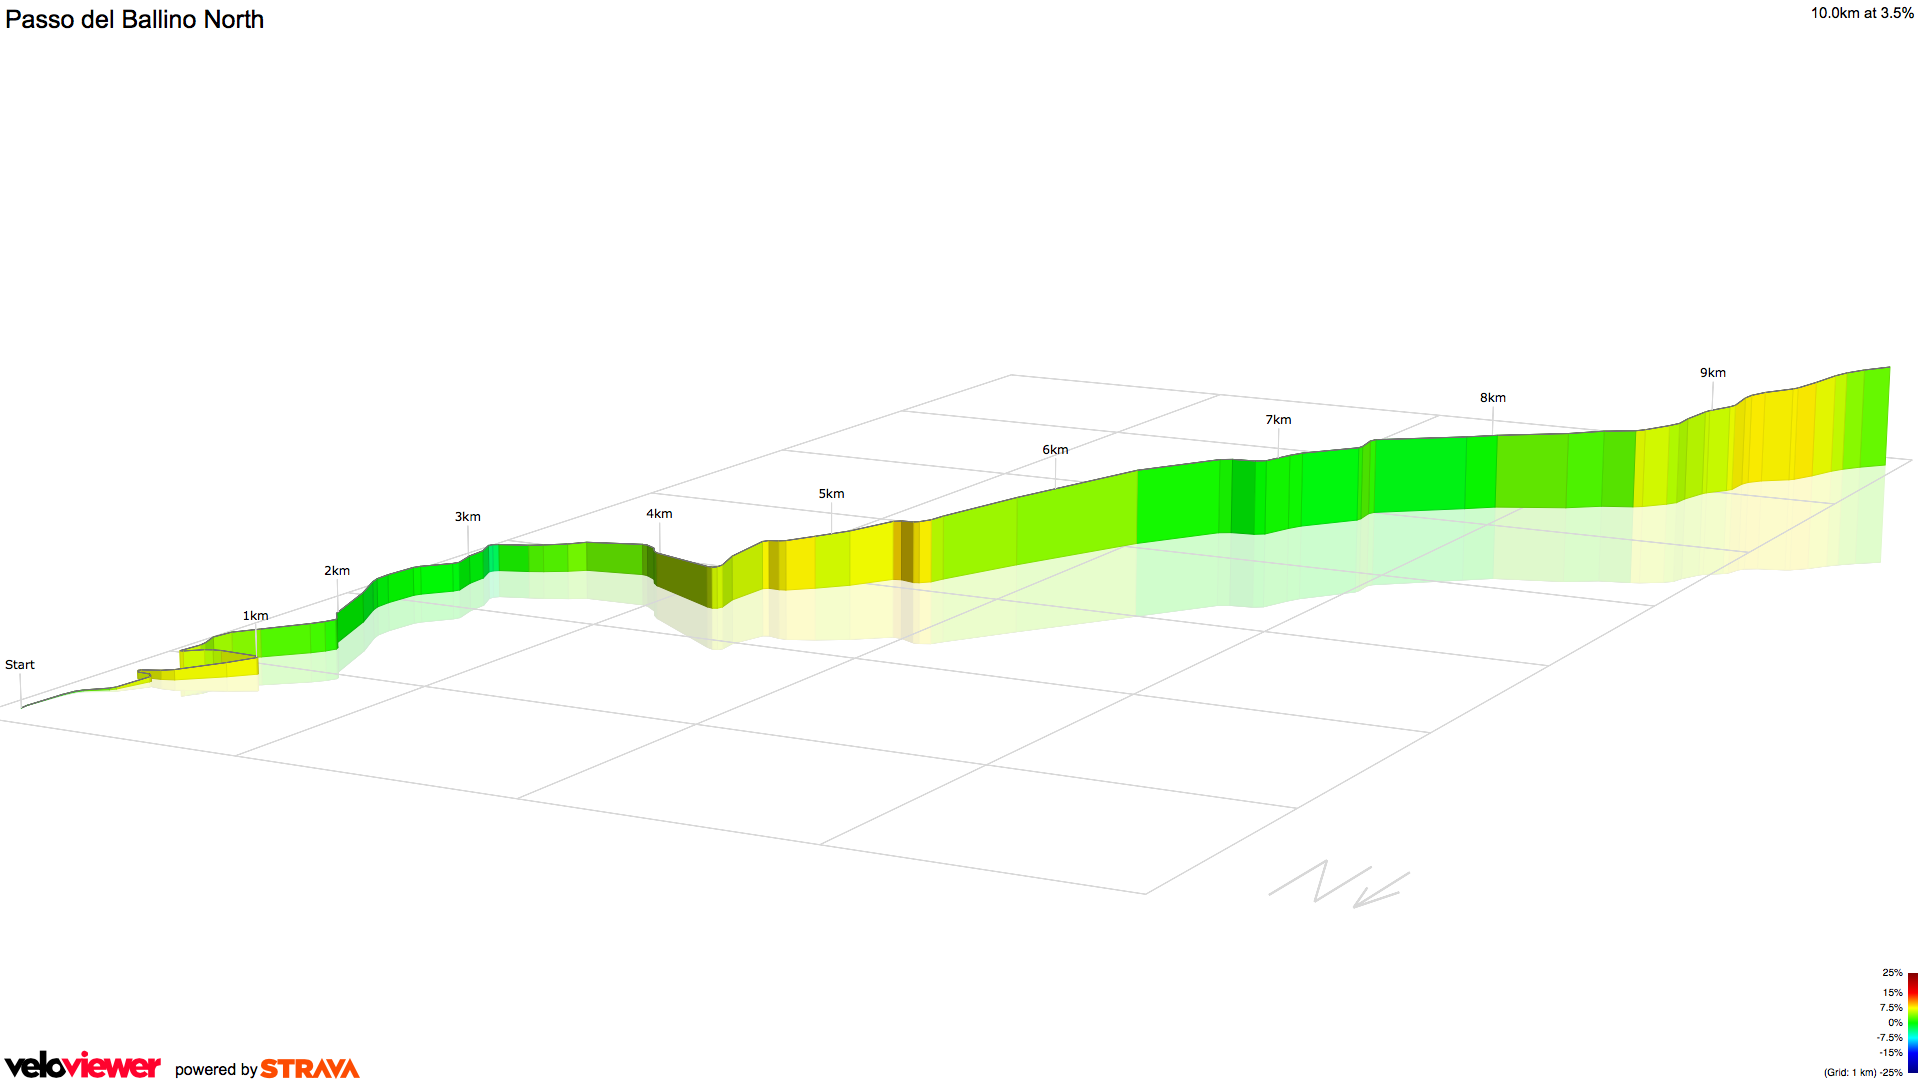 3D Elevation profile image for Passo del Ballino North